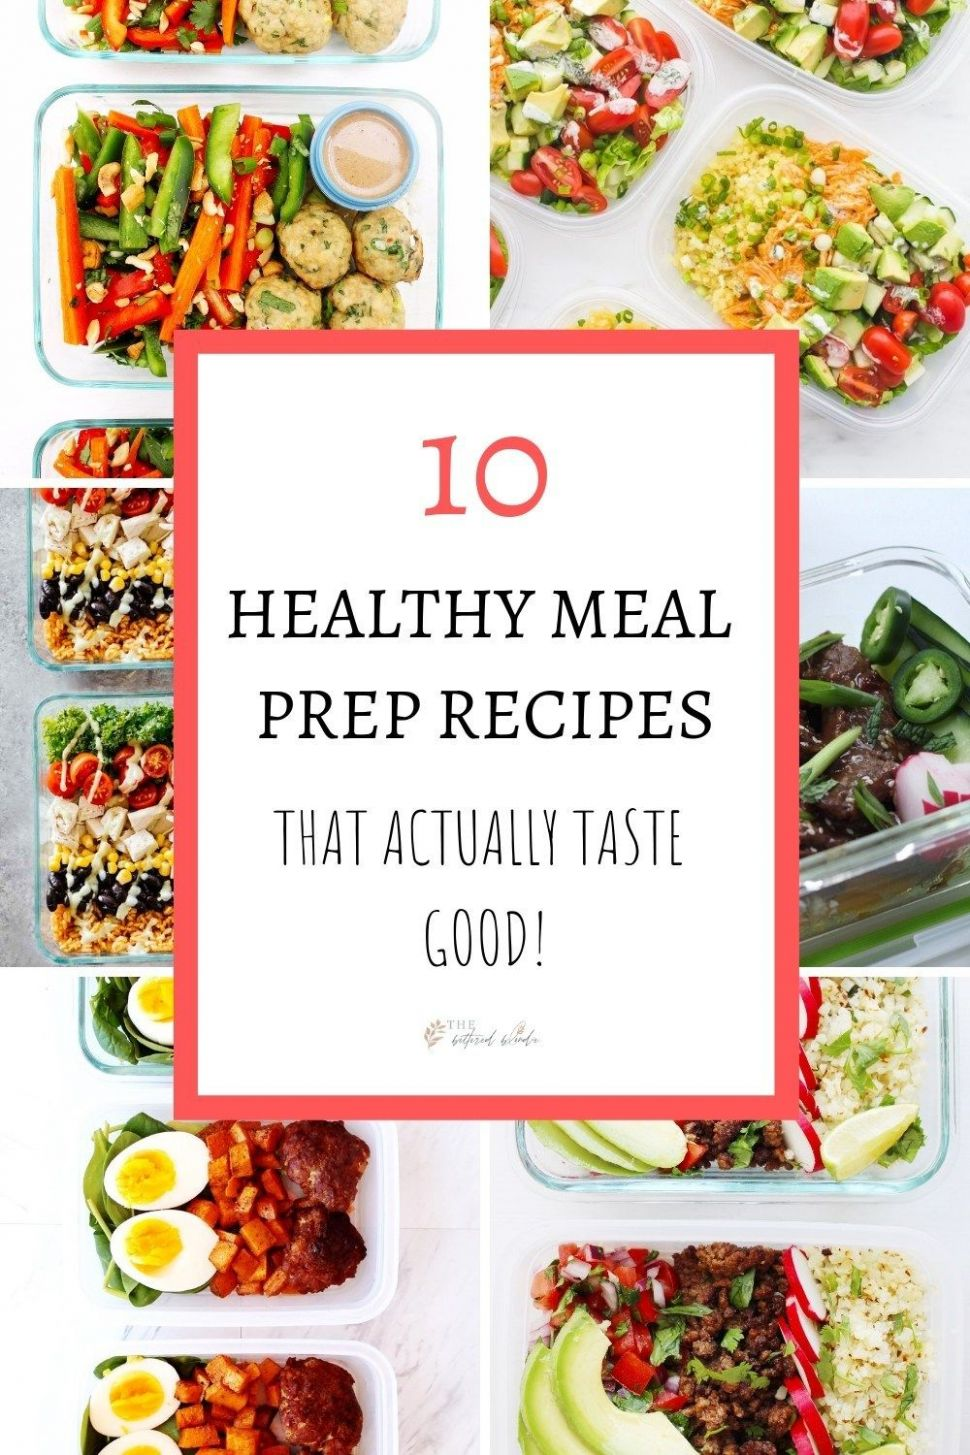 12 Healthy Meal Prep Recipes That Actually Taste Good | Good ..